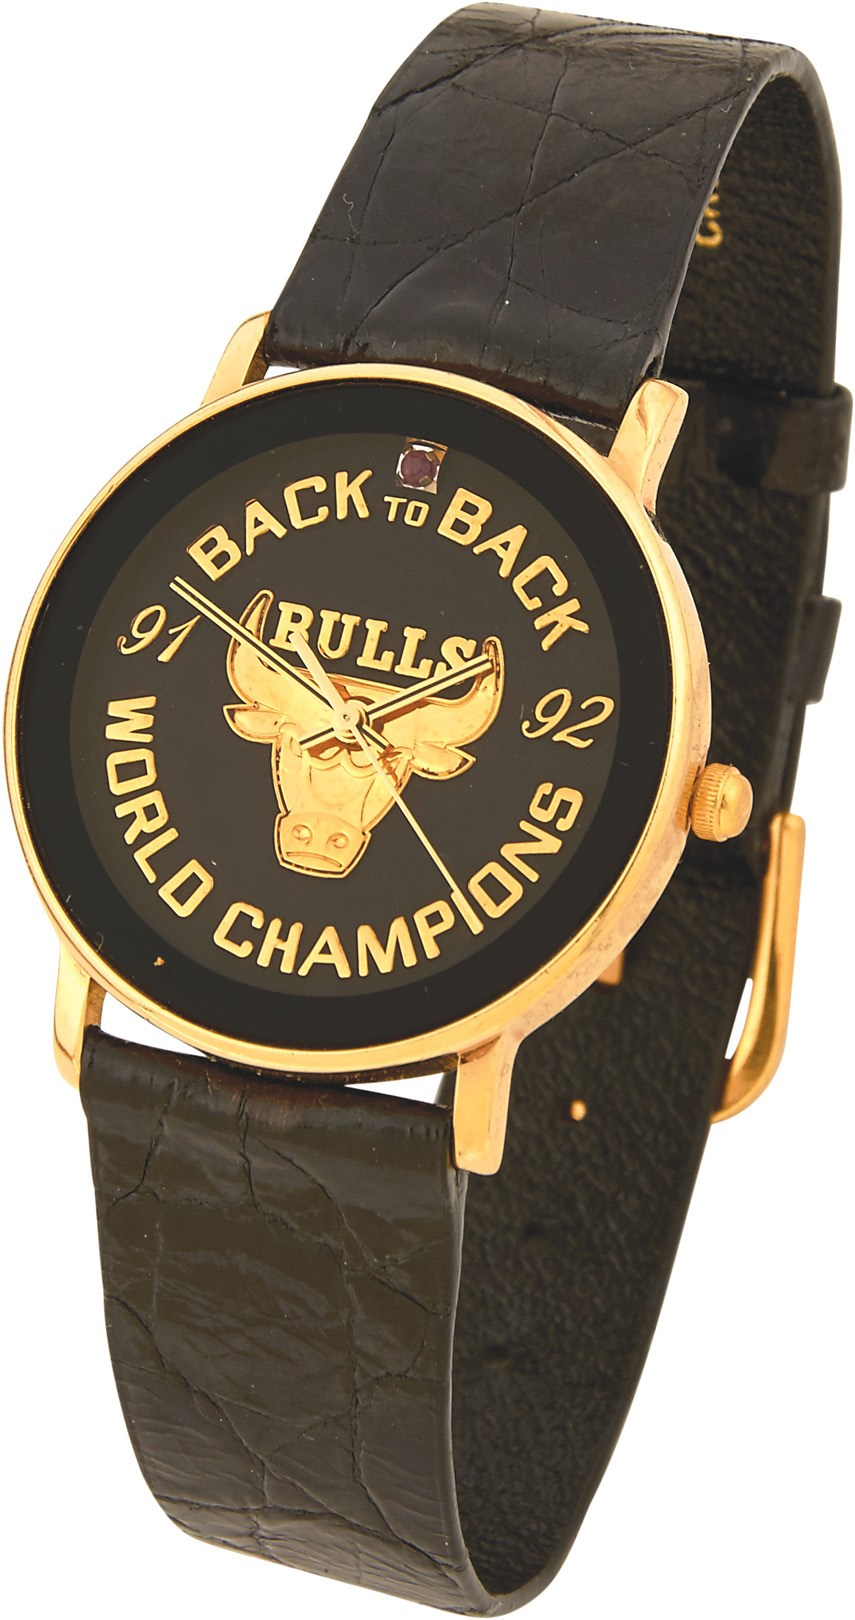 69d2f68812a 1991-92 Horace Grant Chicago Bulls Back to Back Championship Watch